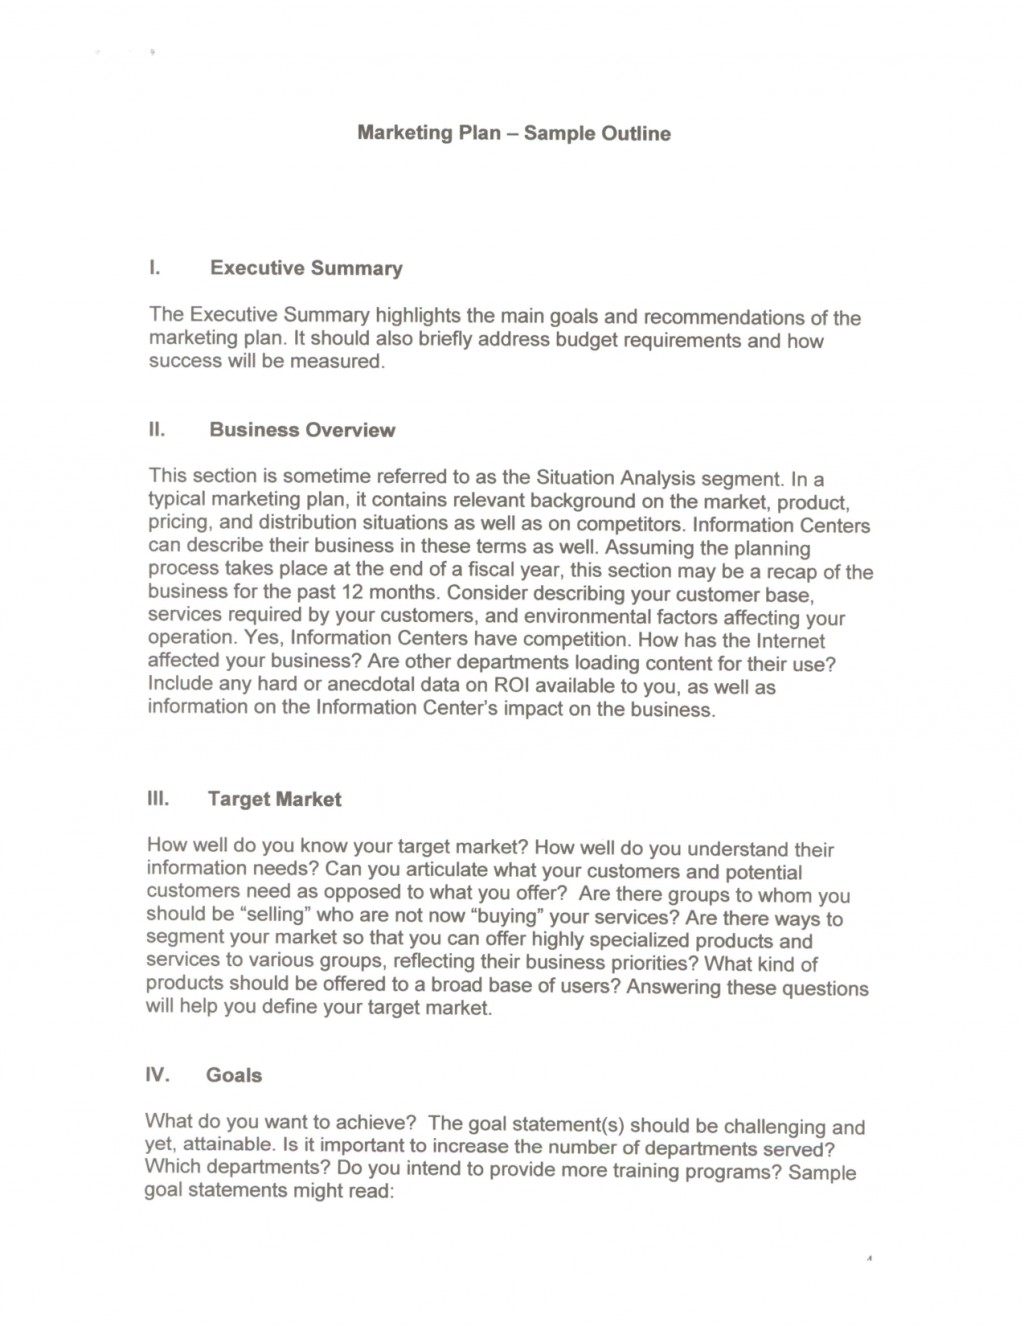 005 Executive Summary Research Paper Format Marketing Plan Example 384040 Imposing Apa Large